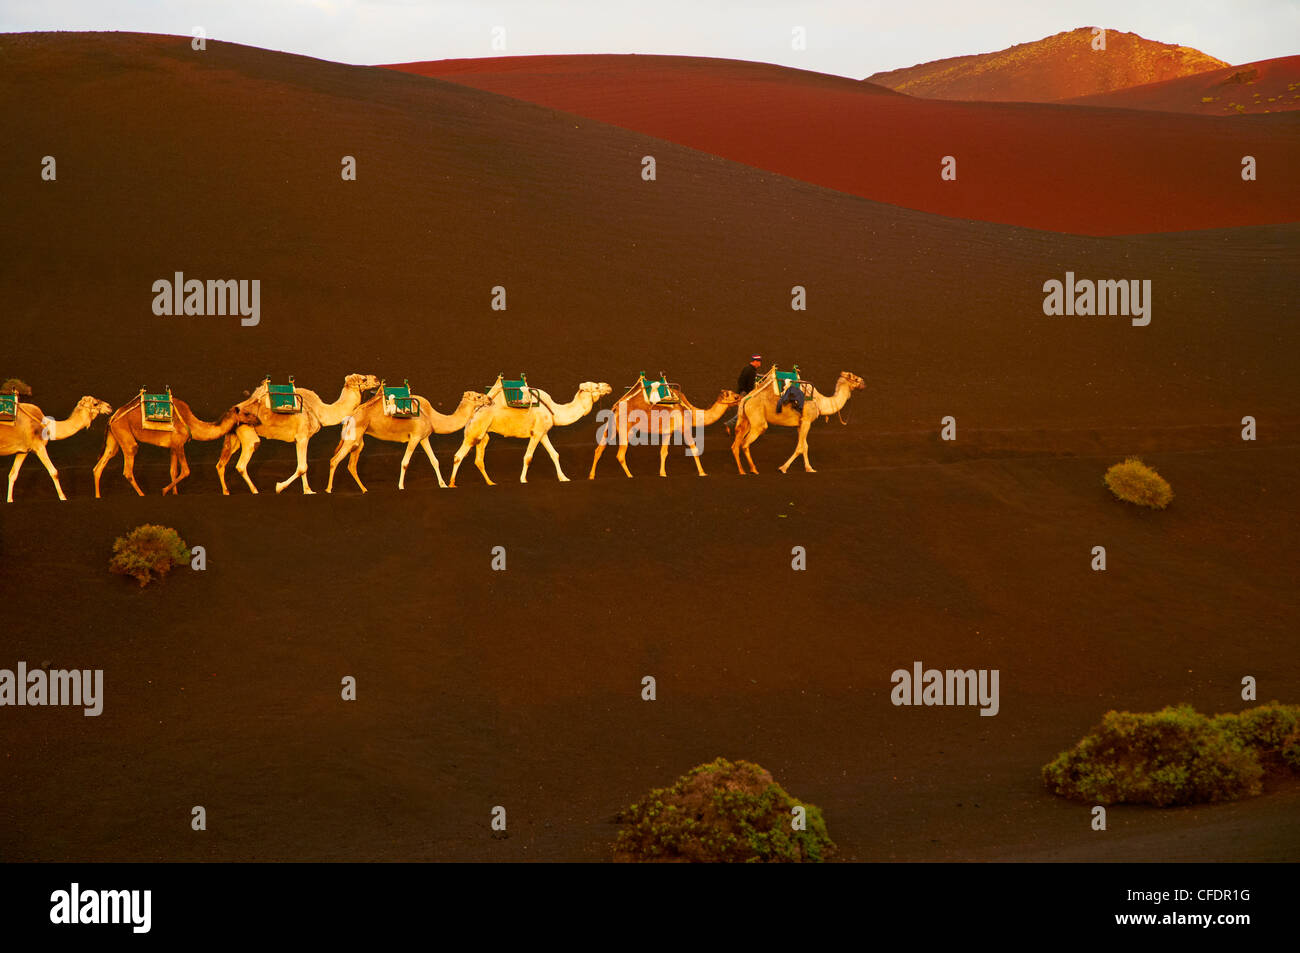 Excursion by camel to visit volcano, National Park of Timanfaya, Lanzarote, Canary Islands, Spain, Europe - Stock Image